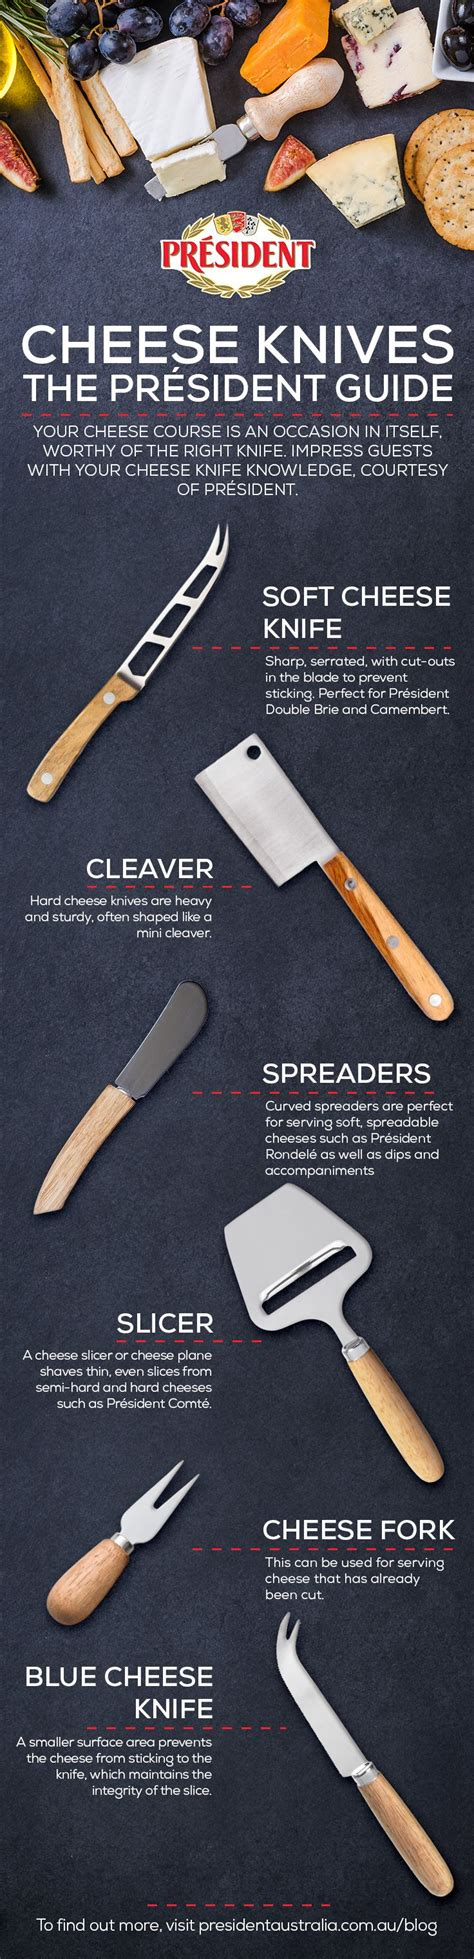 5812 cheese knives guide 1000 ideas about cheese knife on cheese knife